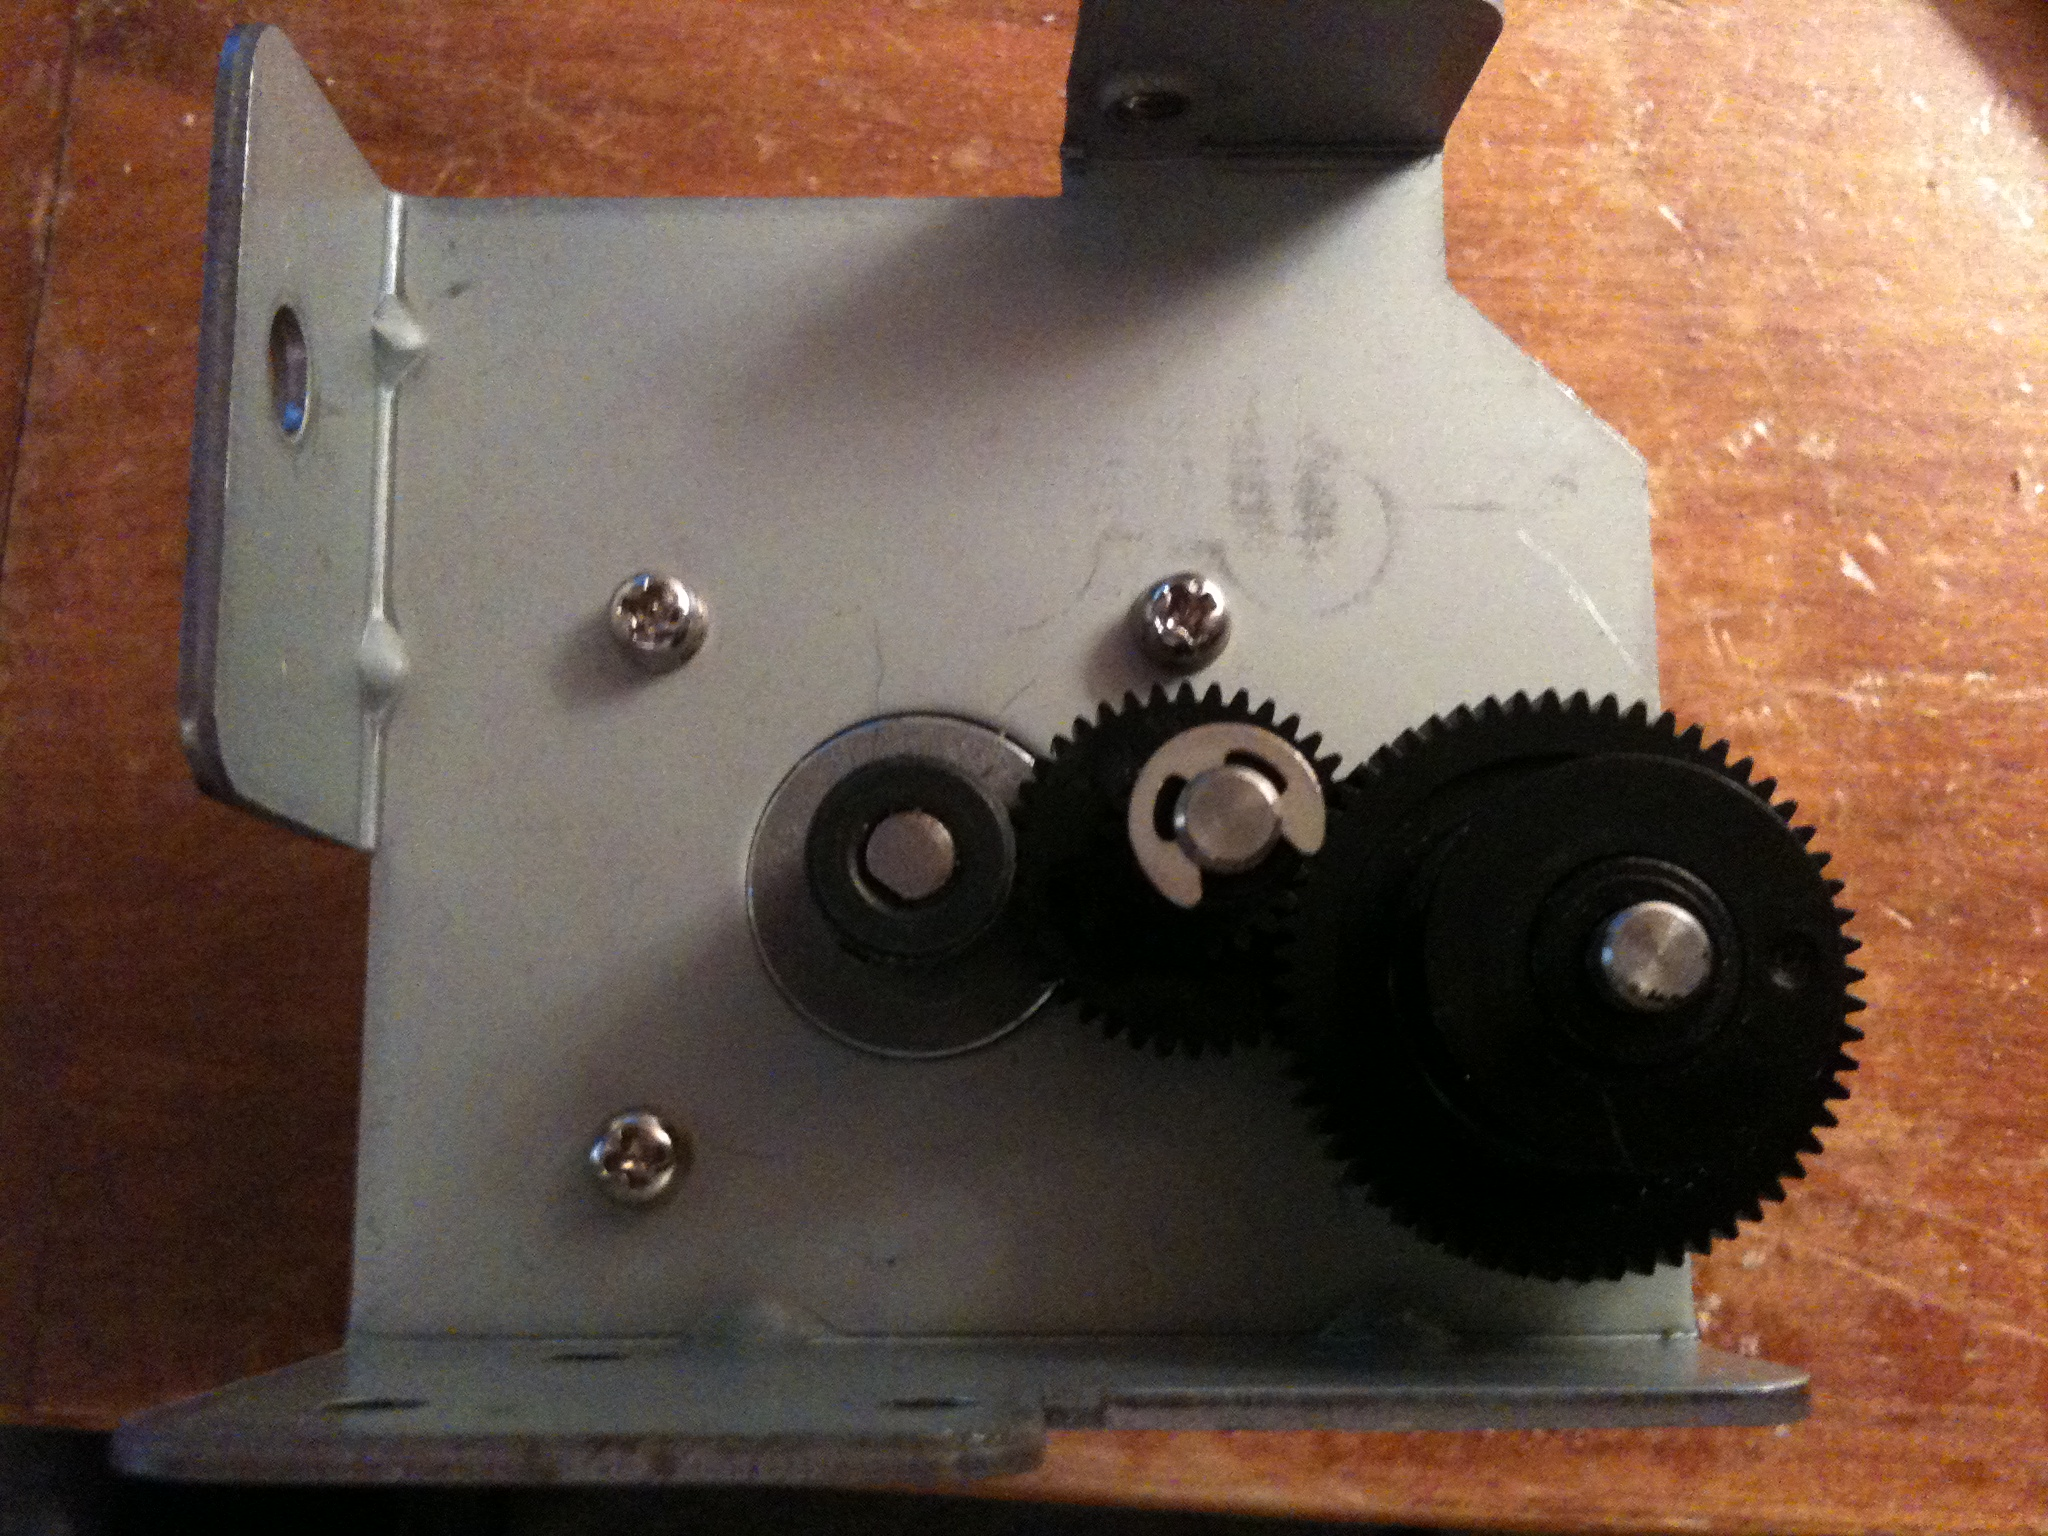 Cnc Timing Belts And Pulleys Saturday September 20 2014 845 Pm 28048 G0704 Belt Drive Motor Pulley Blank High Speed